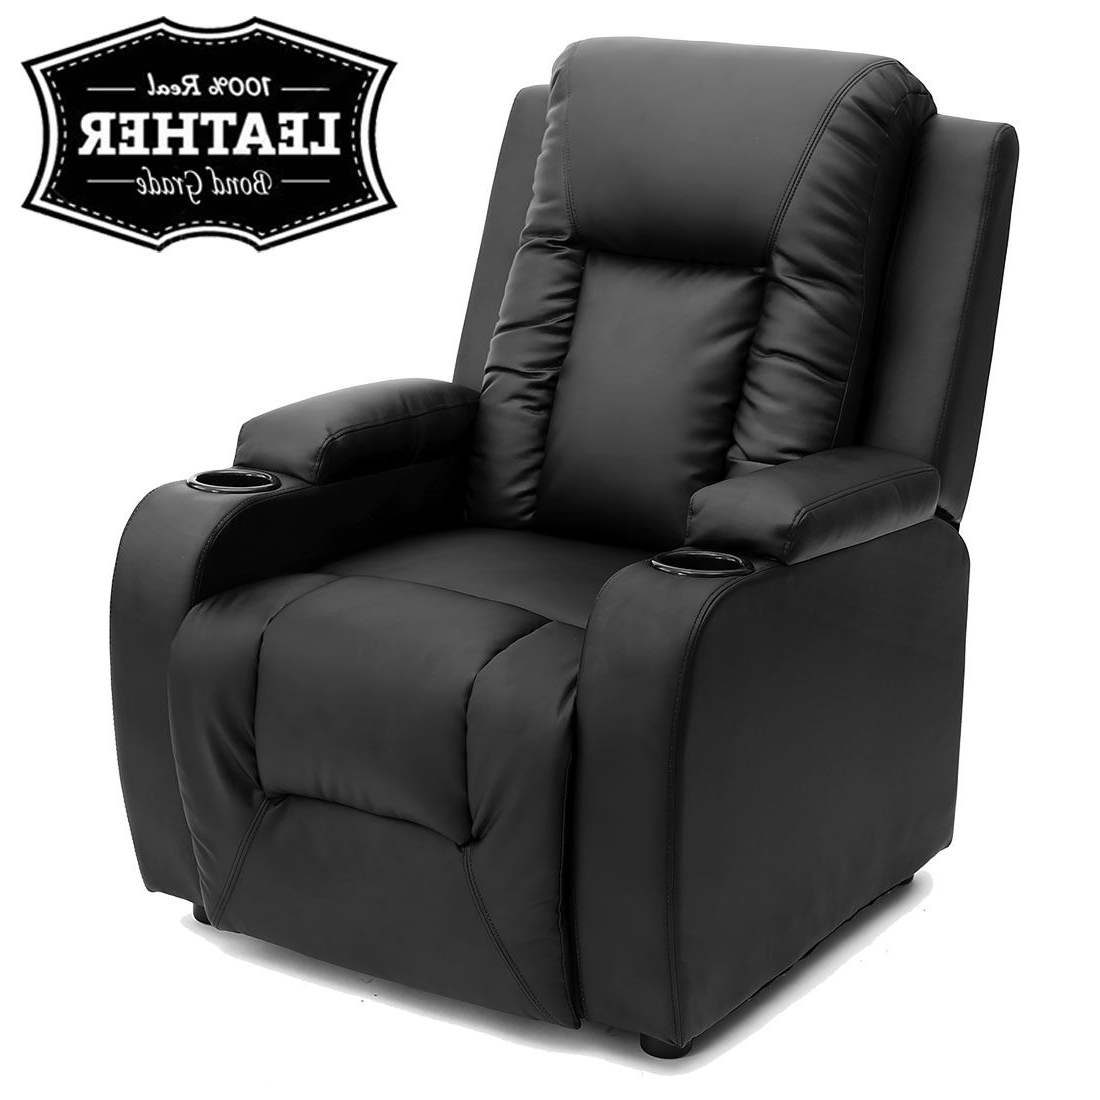 Sofa Chair Recliner Intended For Favorite Oscar Leather Recliner W Drink Holders Armchair Sofa Chair Reclining (Gallery 3 of 20)